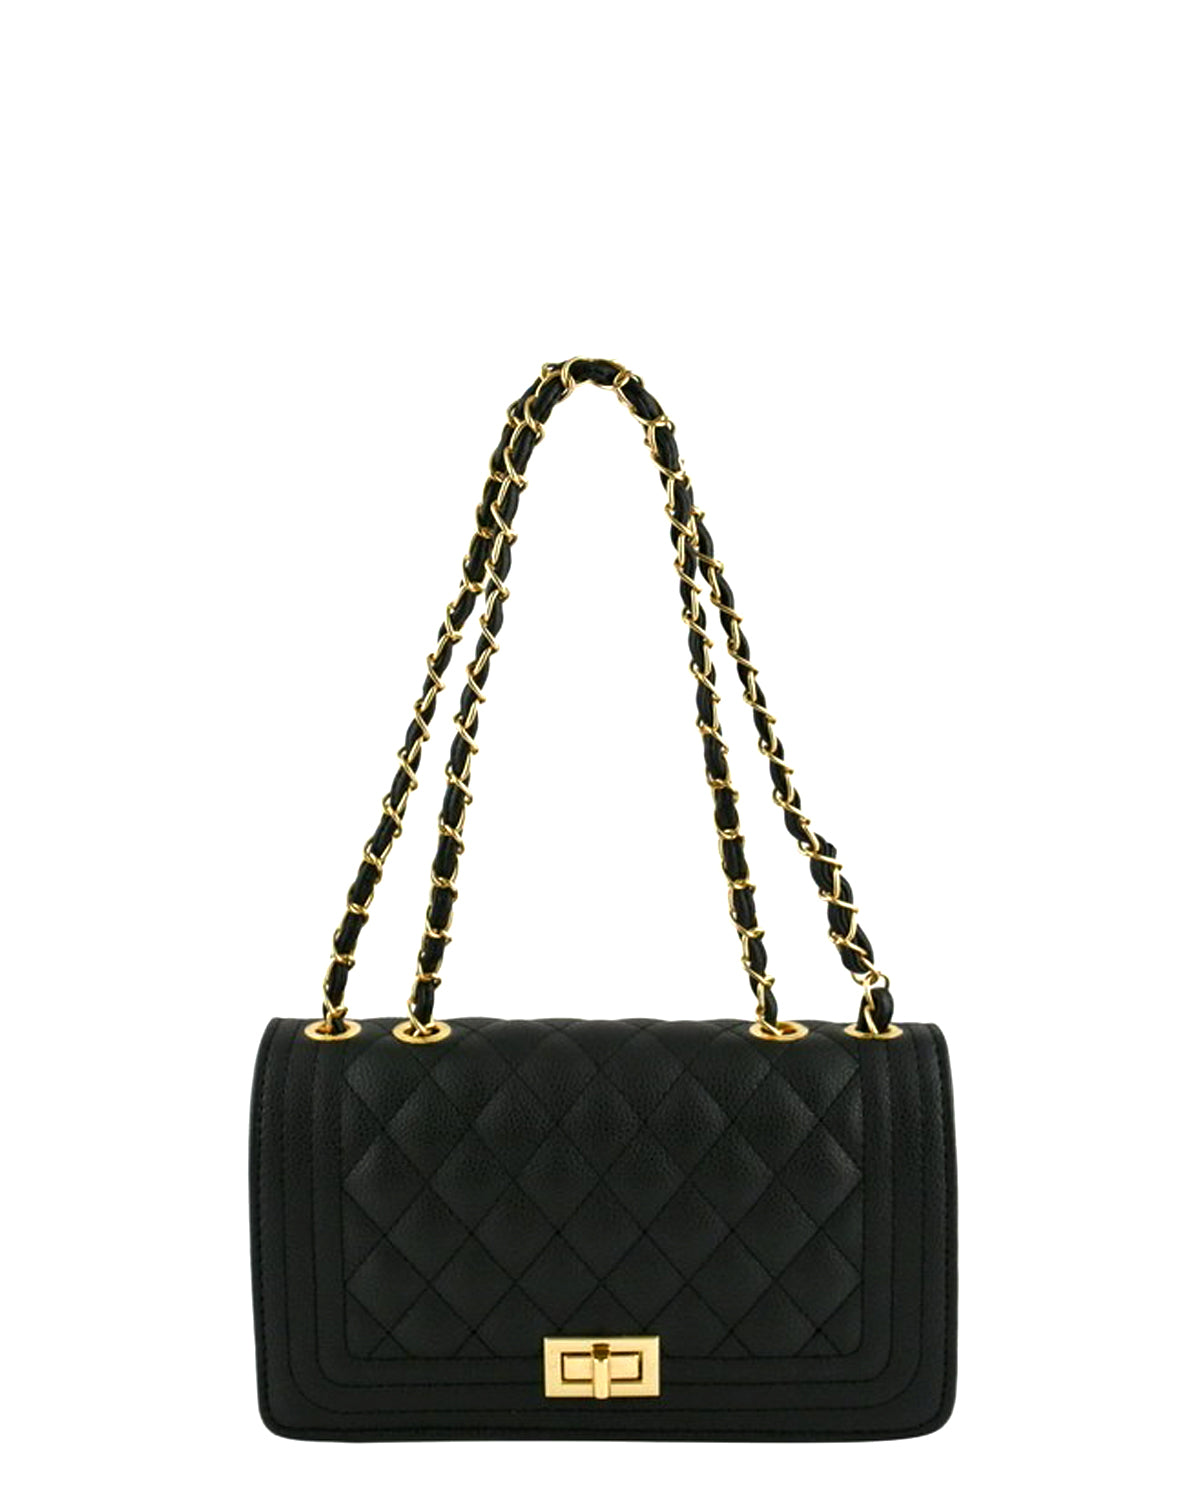 Dear Chanel - Black